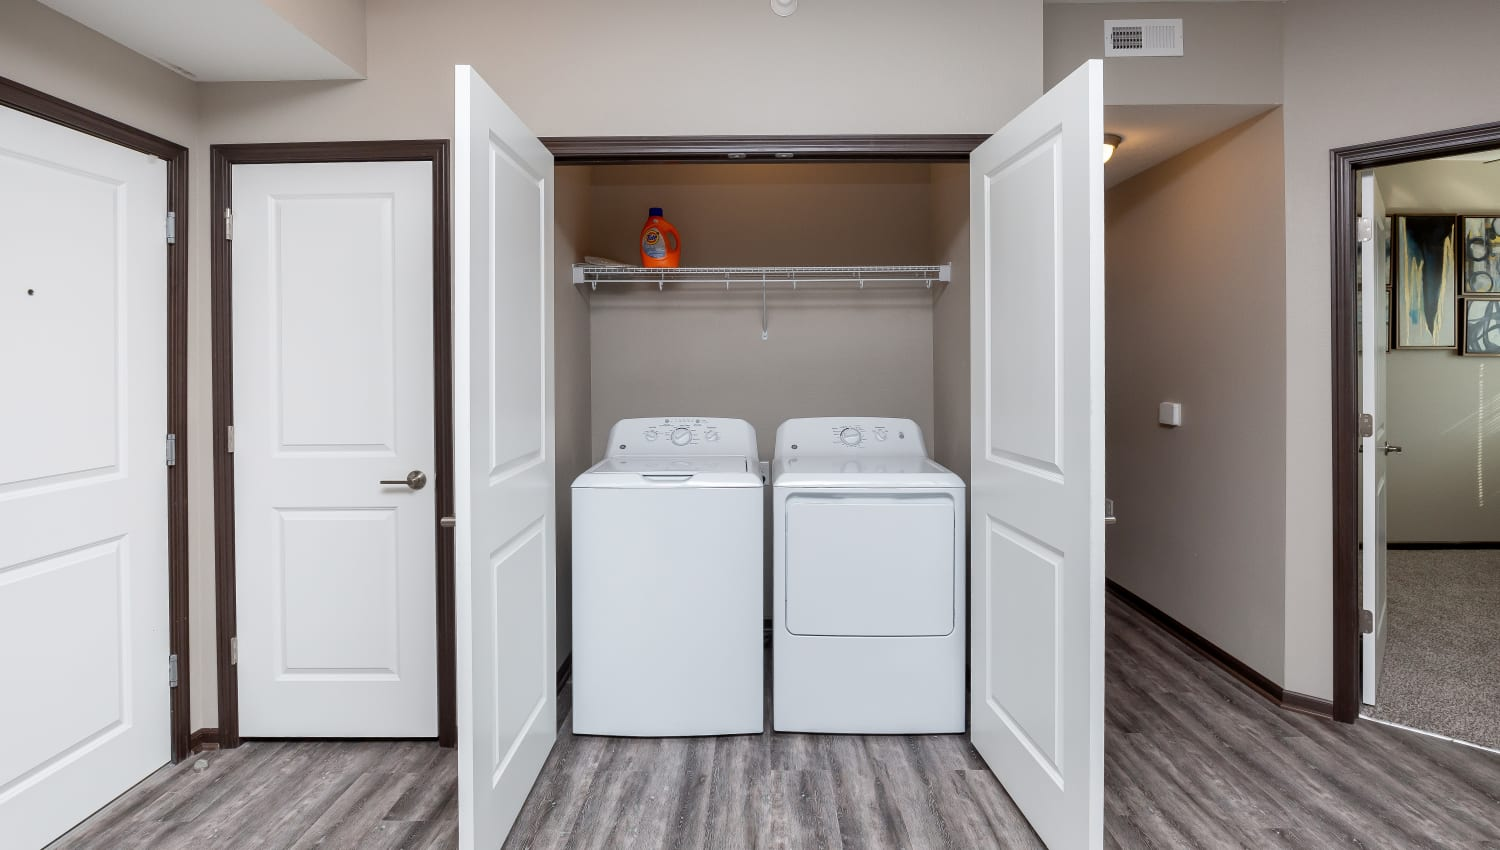 Washer and dryer at Autumn Ridge in Waukee, Iowa